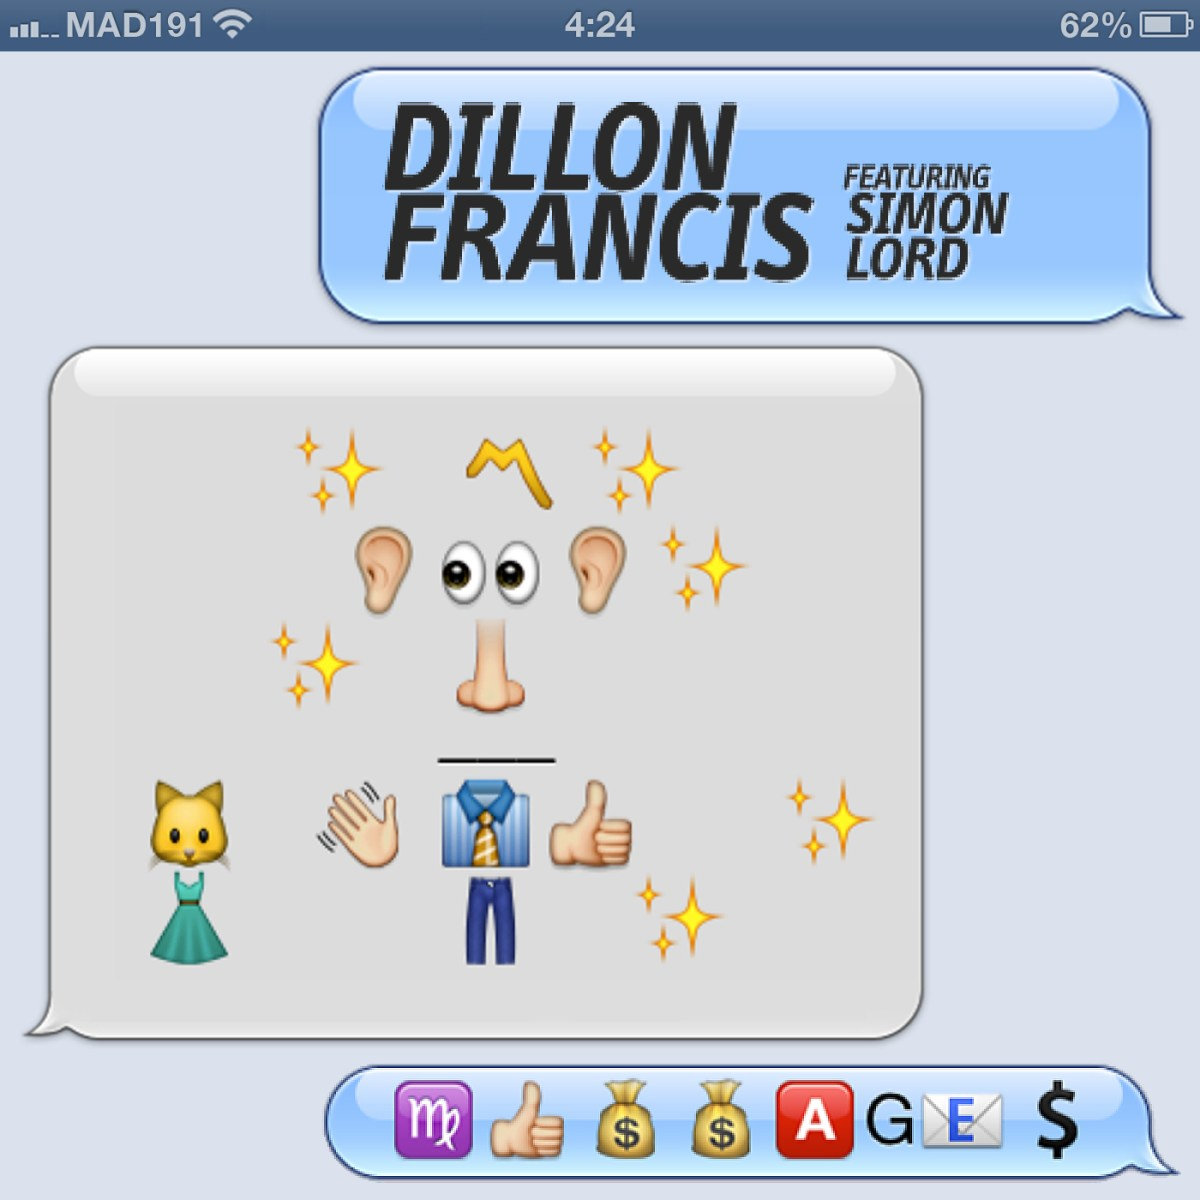 DILLON-FRANCIS-MESSAGES-1400x1400px-4-1